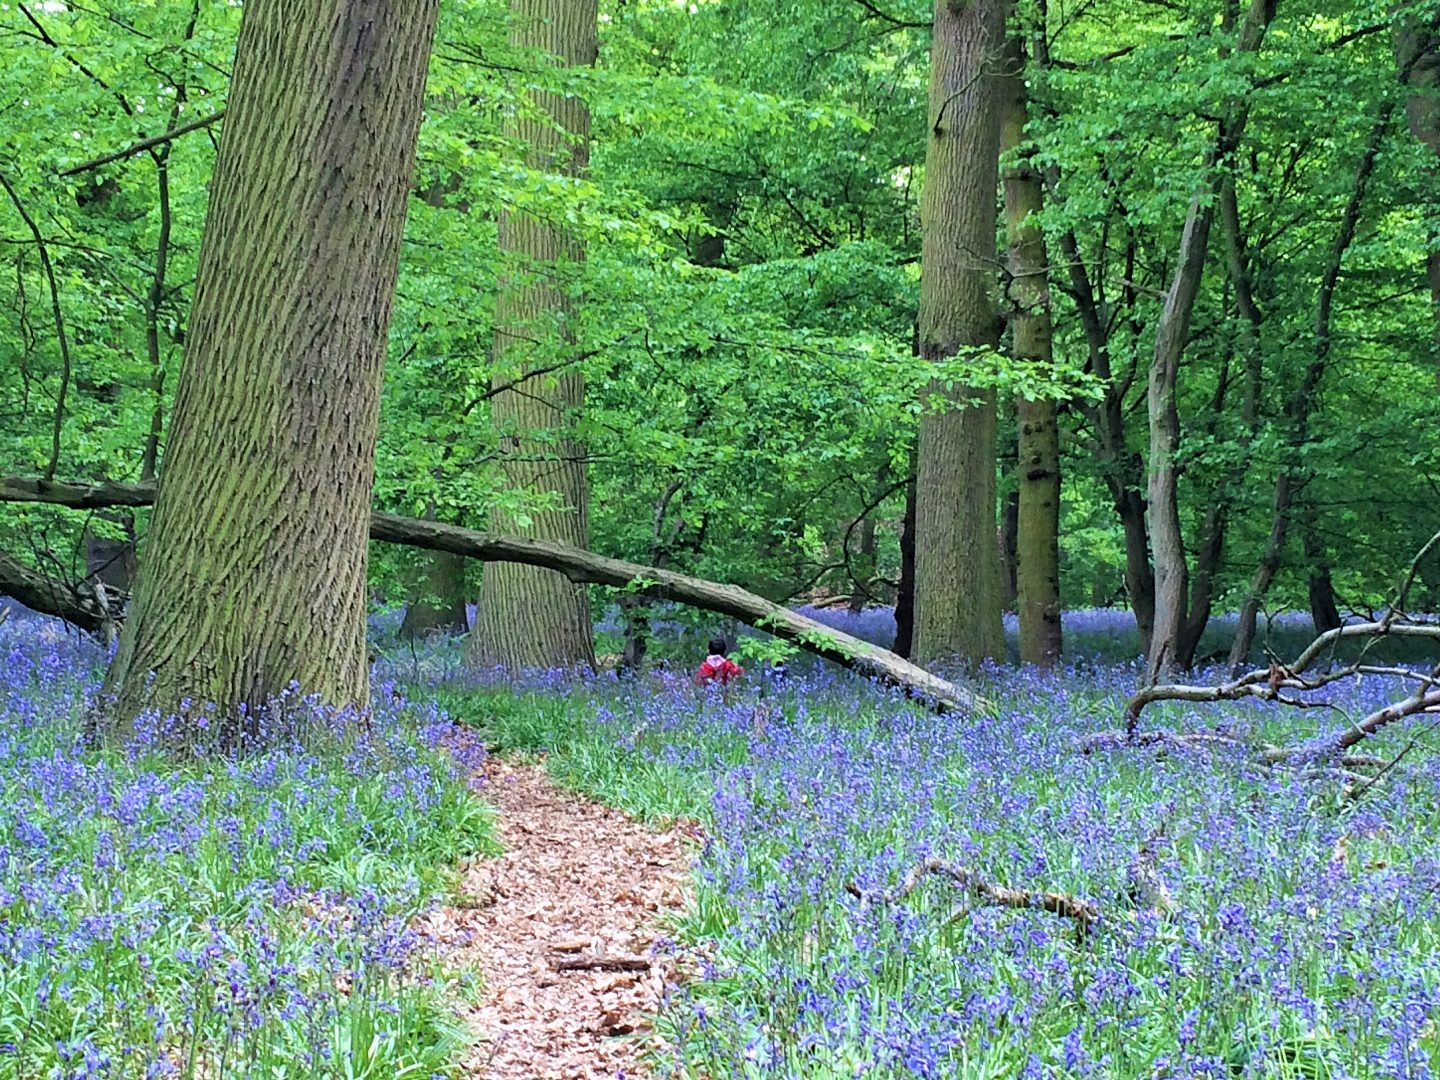 Bluebells in Hertfordshire Bluebells at Panshanger Woods, Hertford, mid May 2016